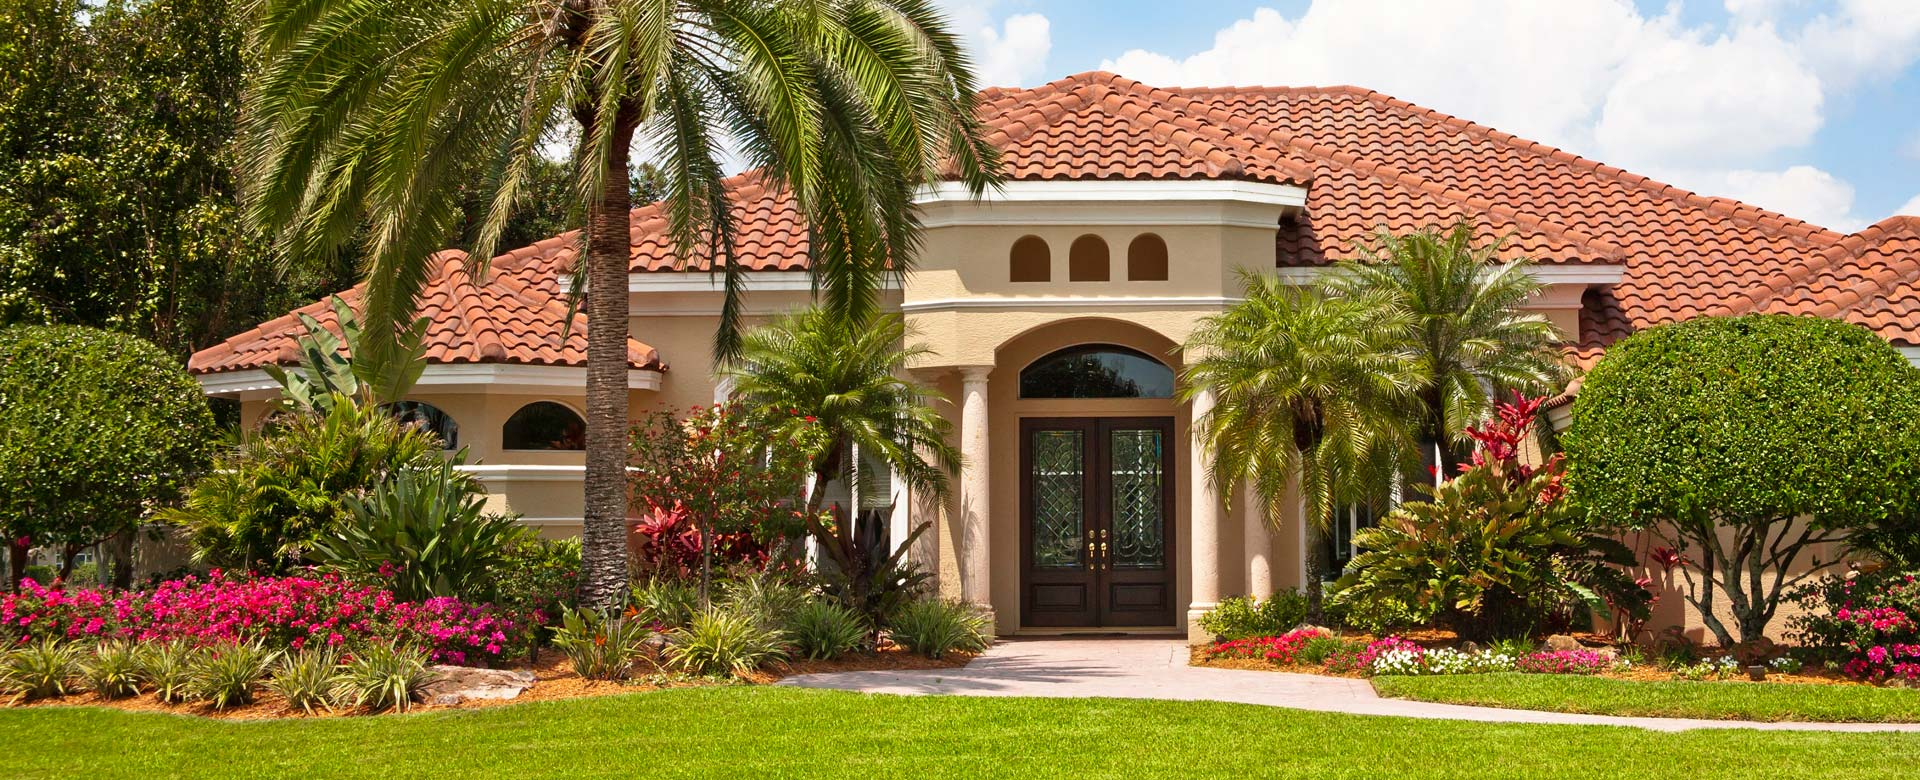 roof cleaning and house washing in davie softwash nation